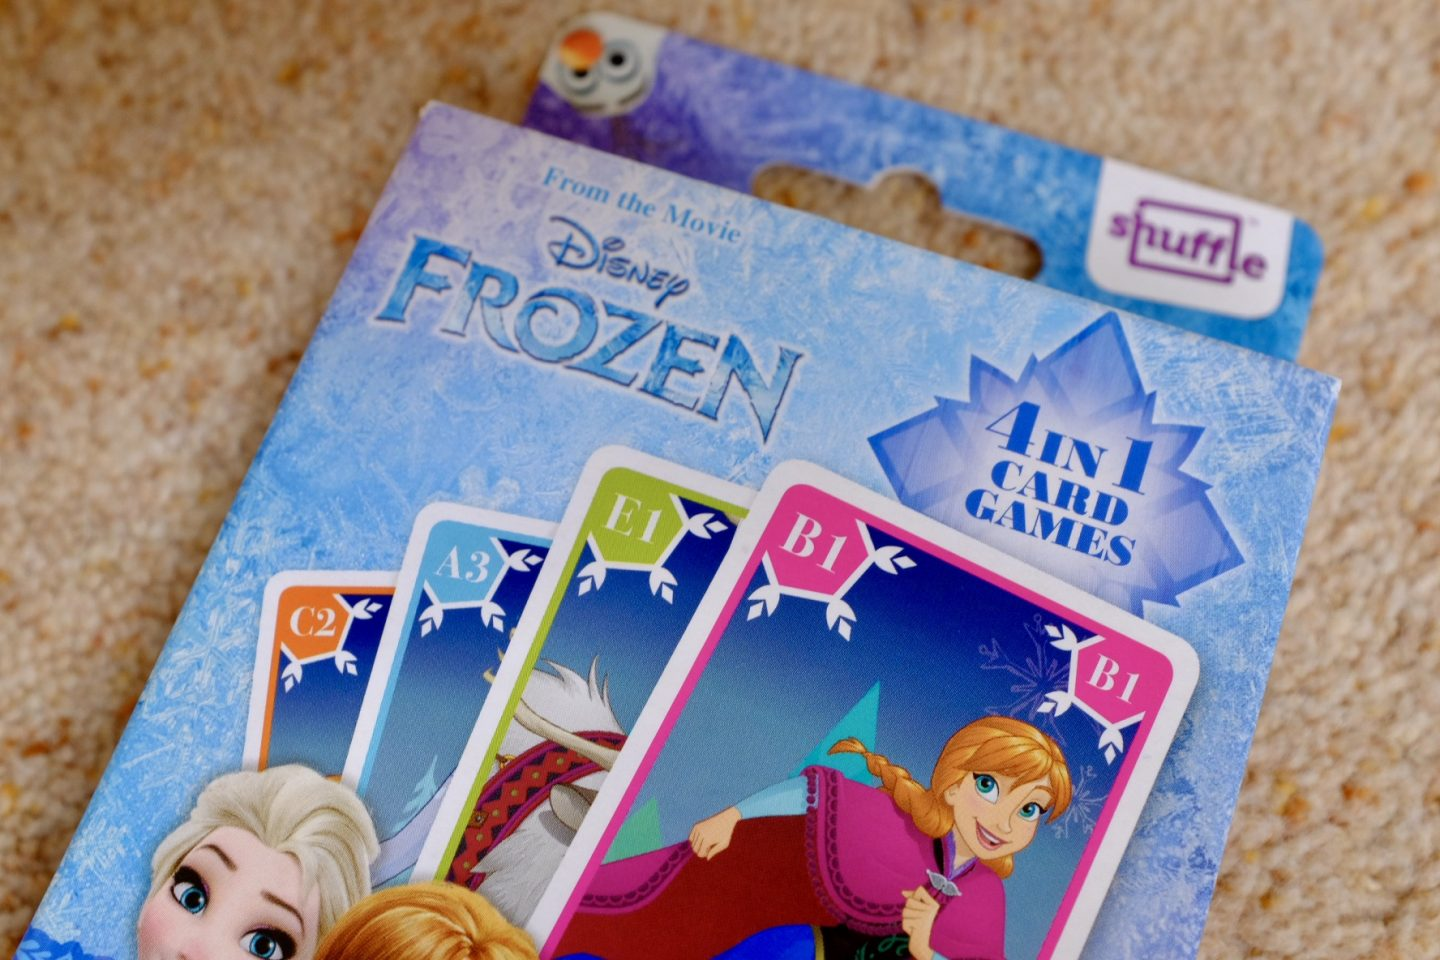 Frozen 2 games - 4 in 1 card games